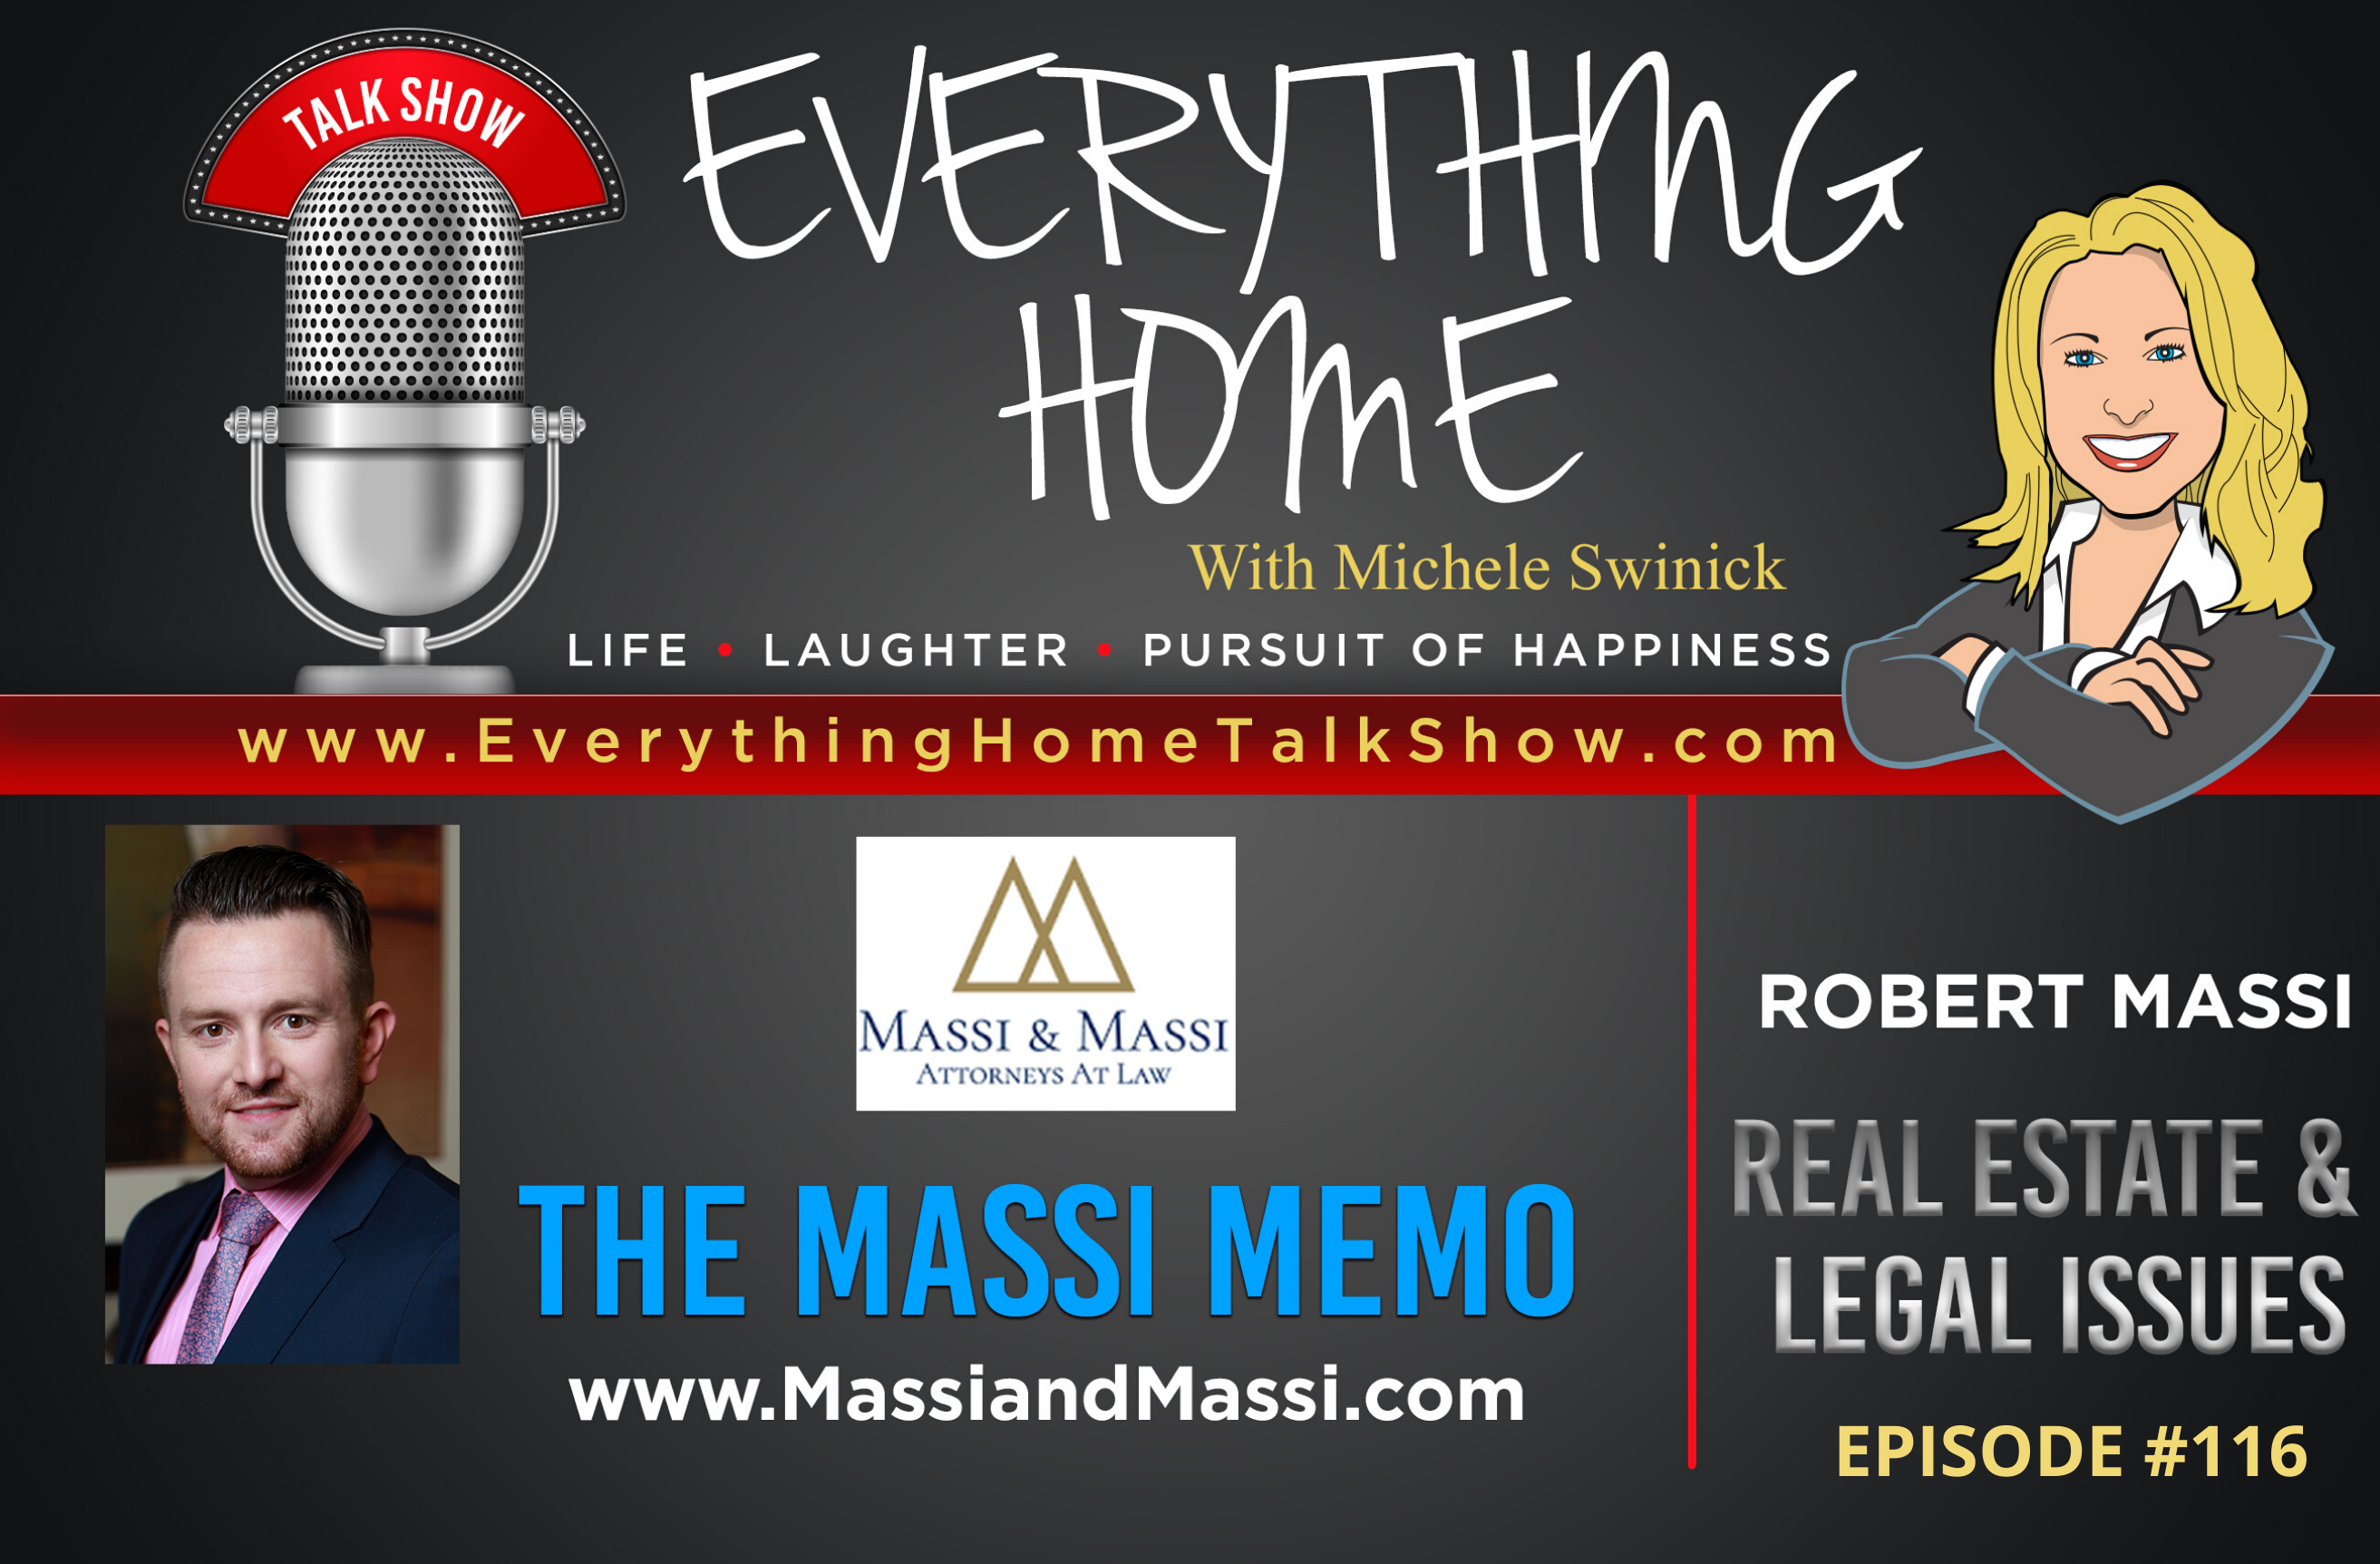 #116 - Life After Coronavirus - Liabilities, Litigation, Lifestyle & Lysol - Robert Massi & The Massi Memo